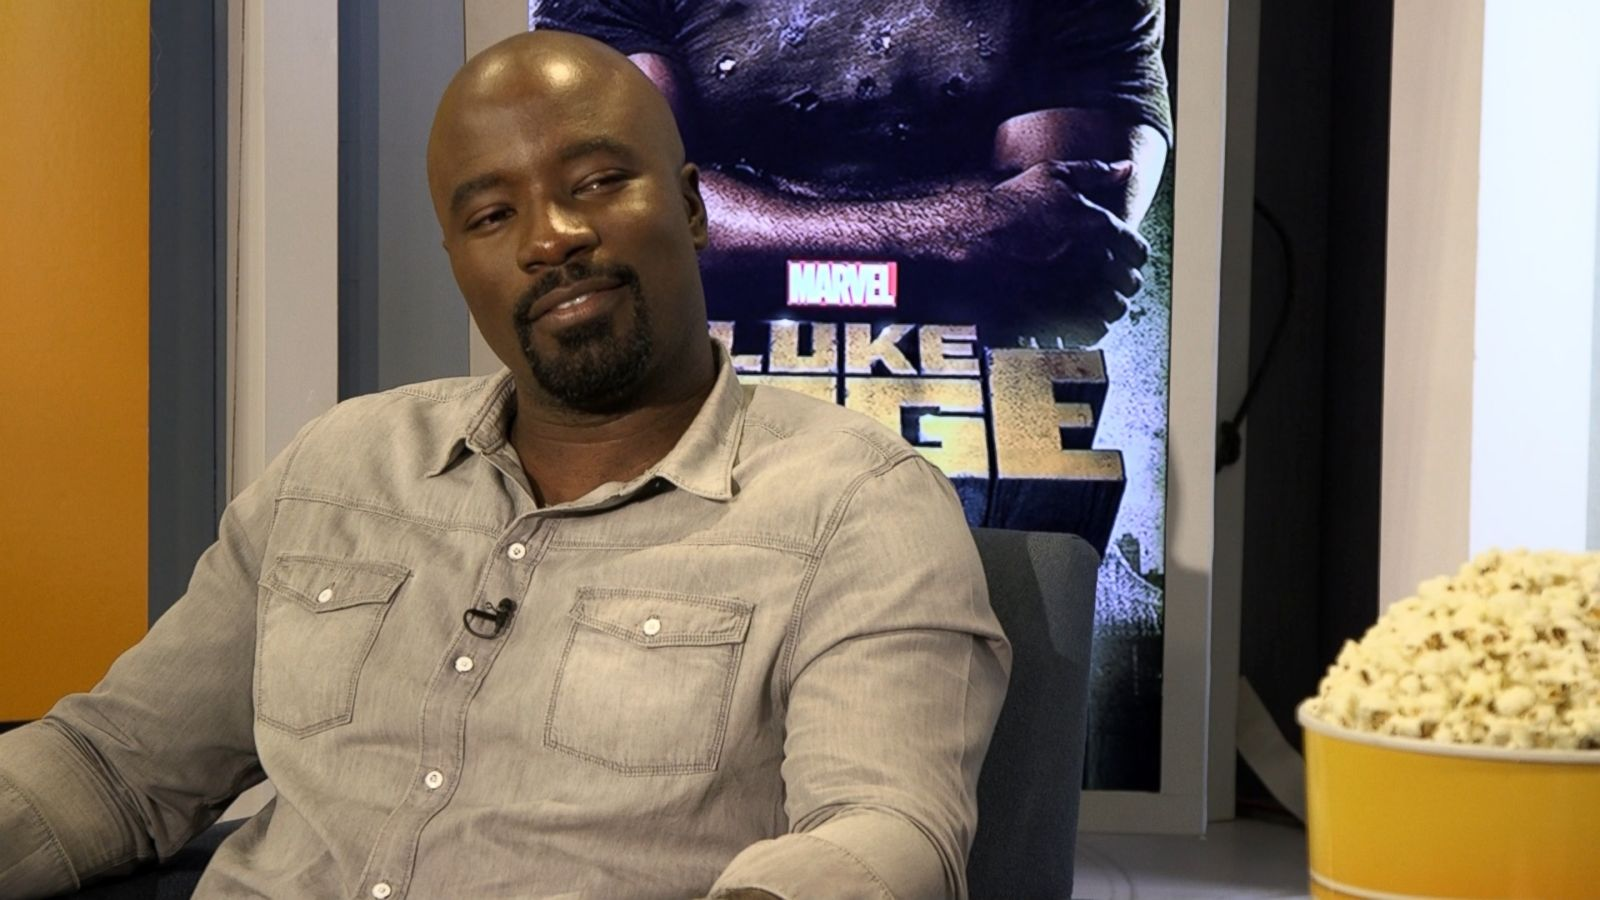 VIDEO: 'Luke Cage's' Mike Colter Sings a Soulful Rendition of 'Ain't No Sunshine'